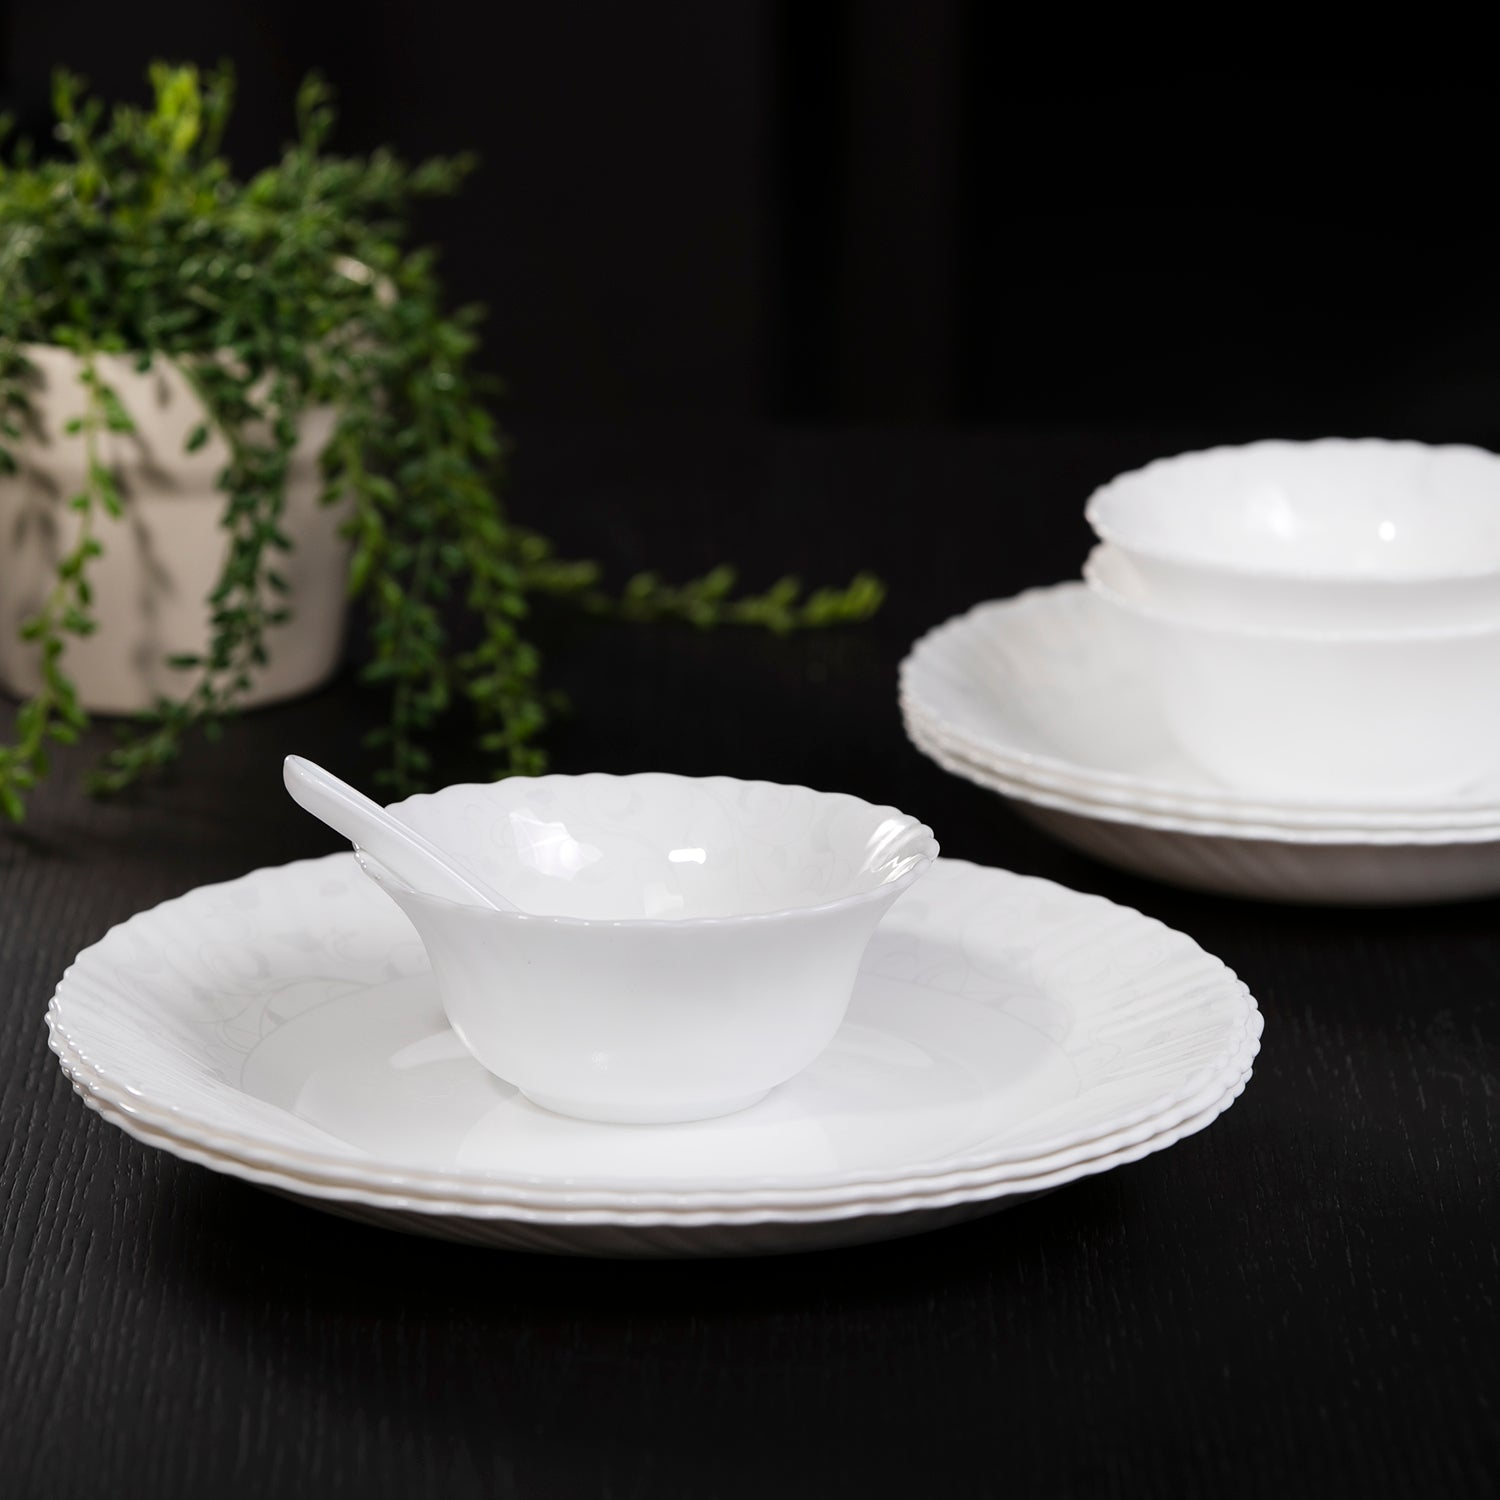 Royalford 82 Piece Dinner Set Flora Series, Wave Shape Cream White Porcelain Dinner Set, Temperature Resistant, Durable and Stylish Dining Set